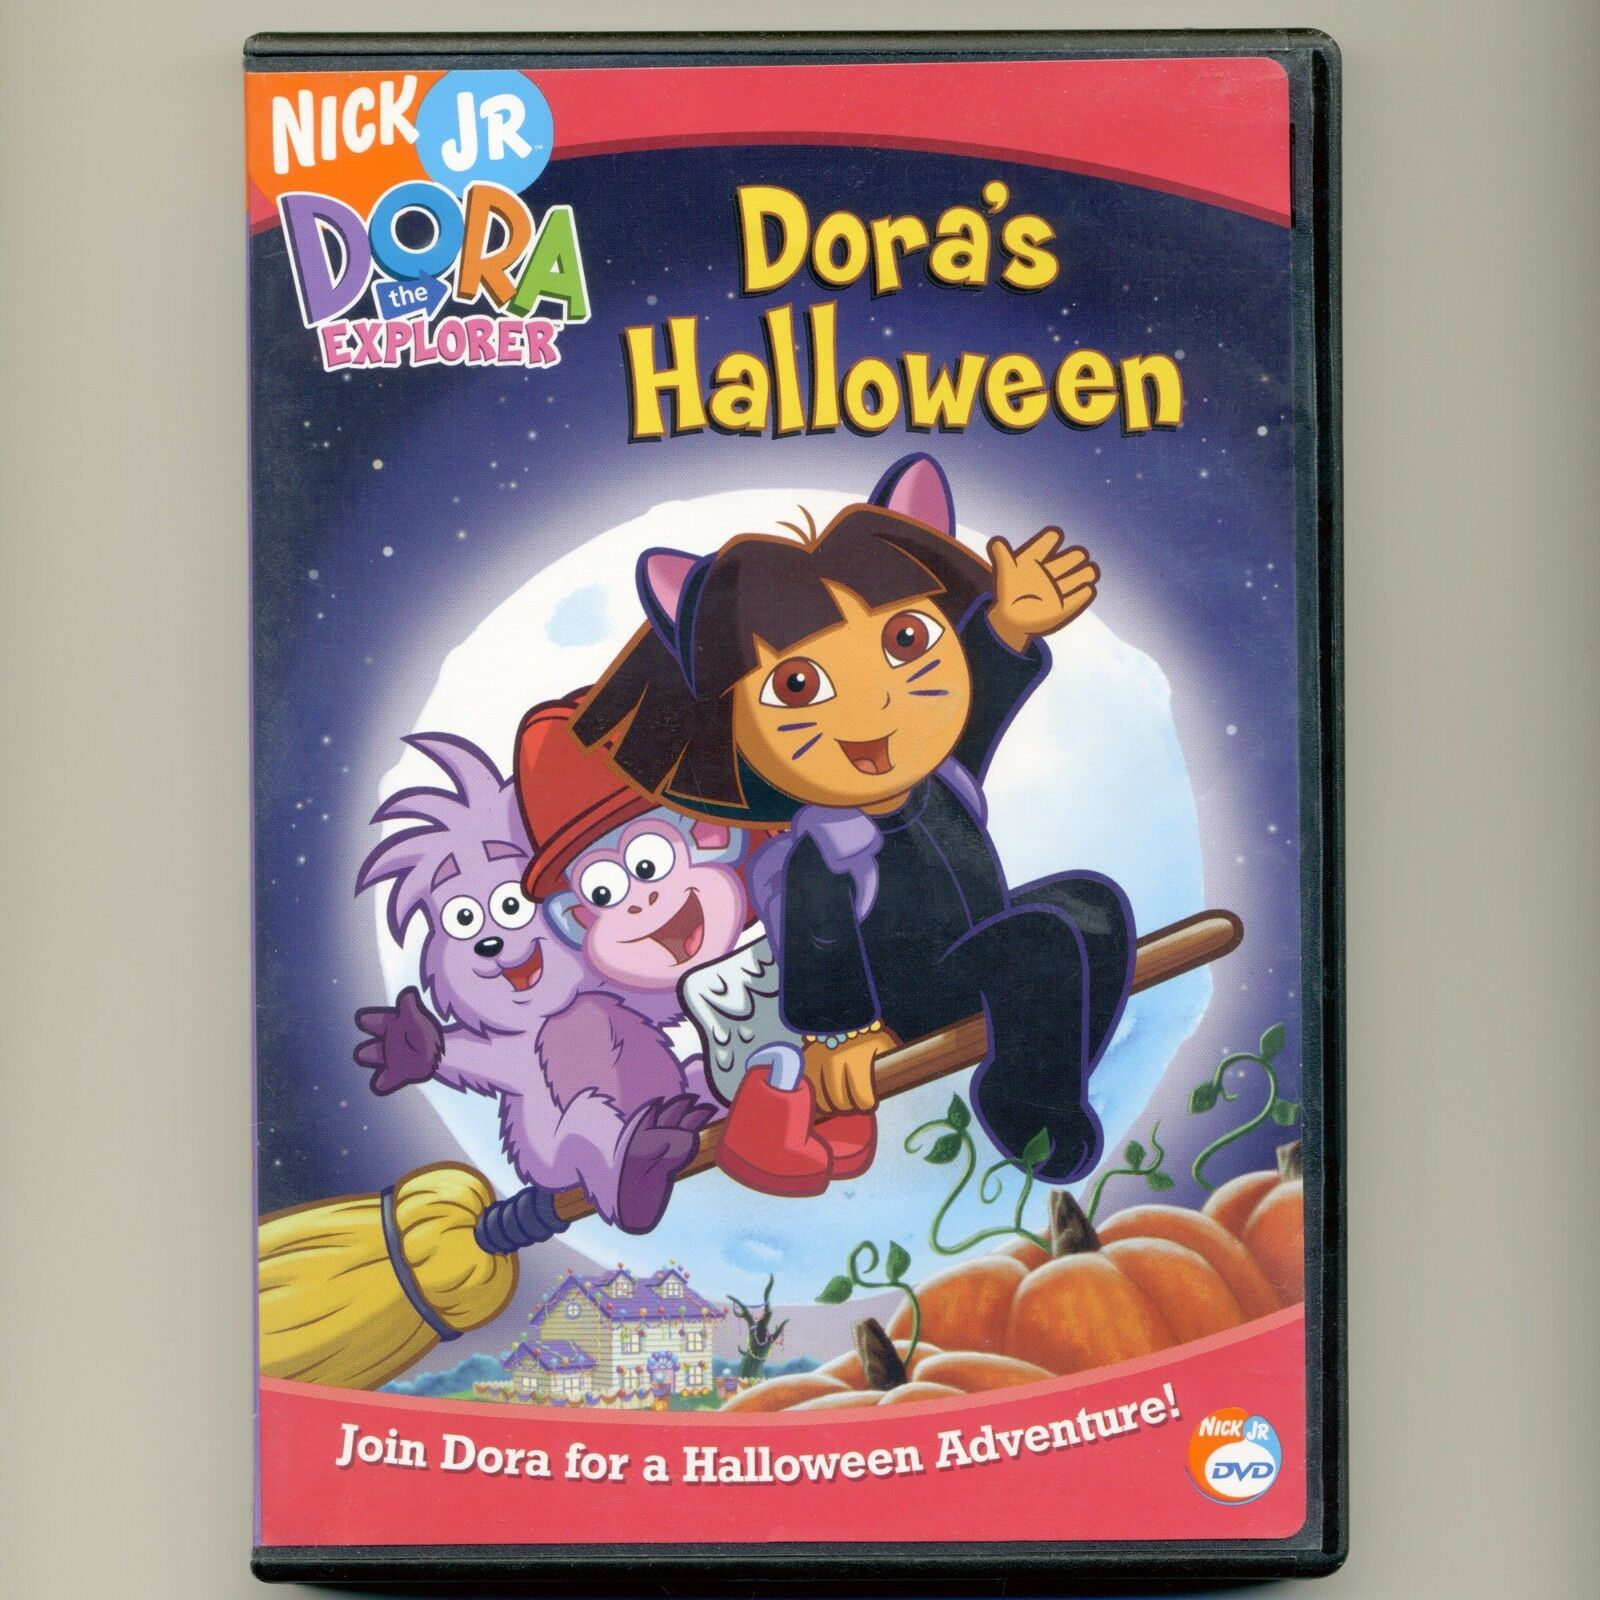 dora's halloween g mint dvd nick jr. pbs 4 episodes boots, wizard